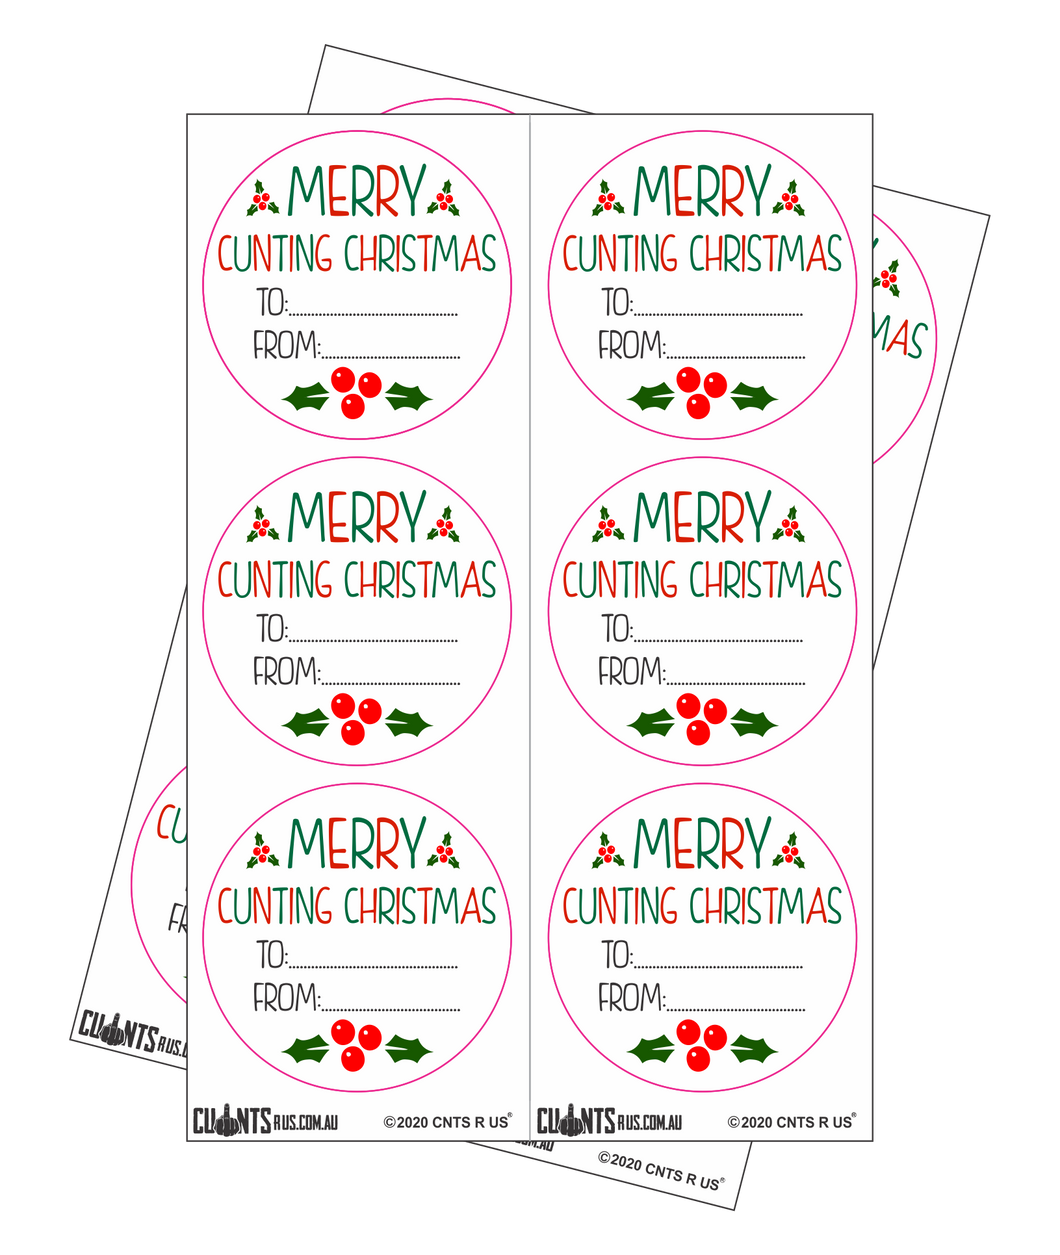 Sticker Pack - Merry Cunting Christmas CRU18-23R-11053